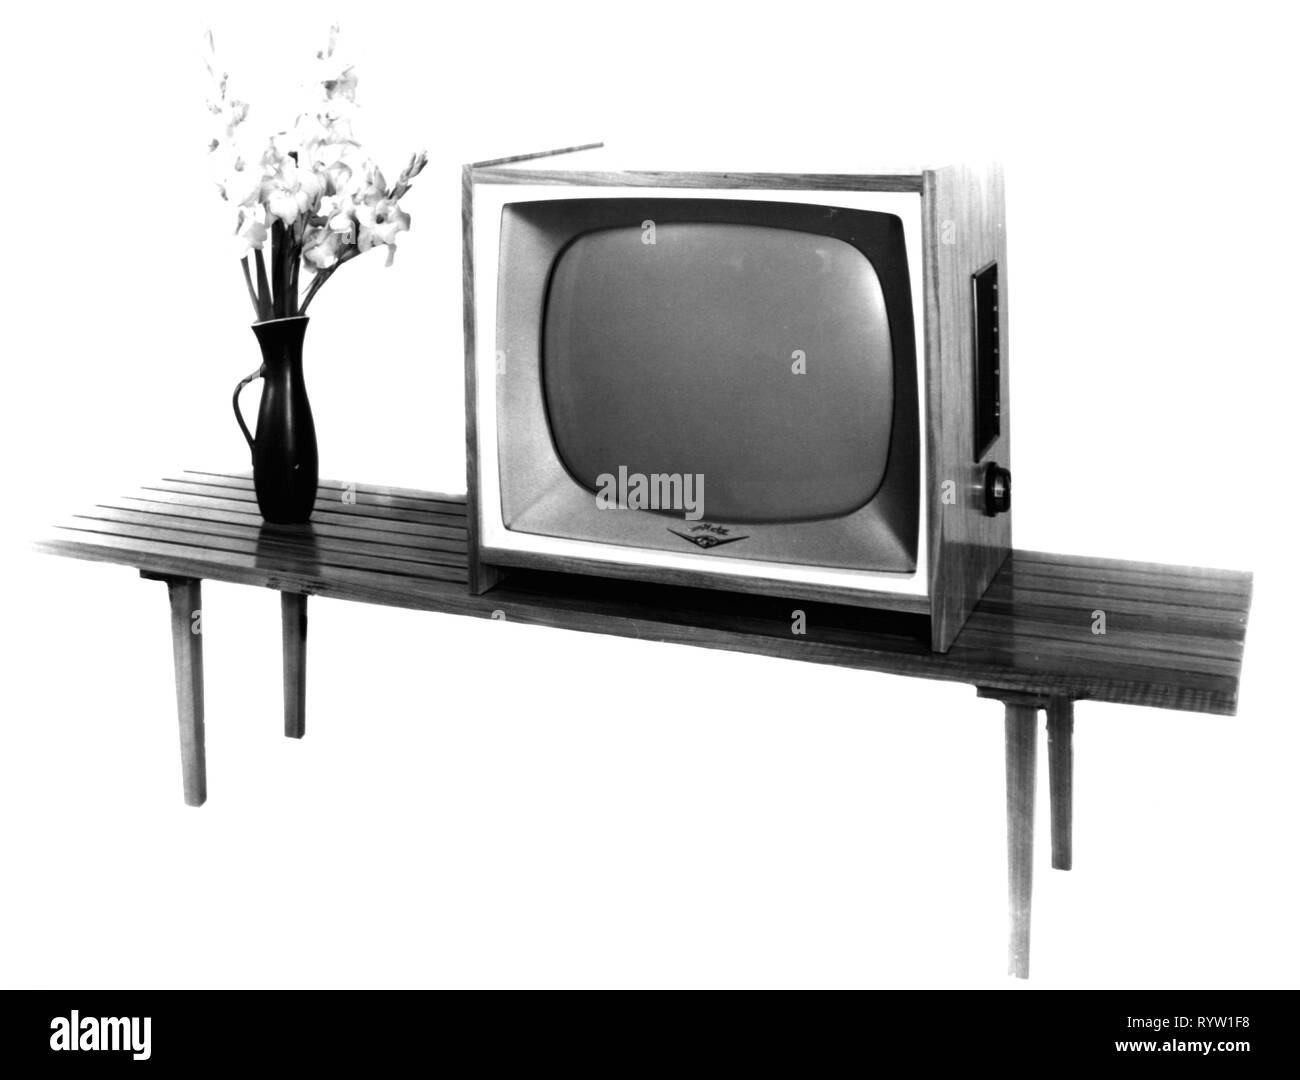 broadcast, television, television set Metz 965, Germany, circa 1960, television furniture, furniture, table, tables, flower vase, flower vases, flowers, flower, vase, vases, telecommunications, telecommunication, telecom, technics, industry, industries, consumer electronics, entertainment electronics, home electronics, home entertainment, Germany, 1950s, 20th century, 1960s, television set, TV set, TV, television sets, TV sets, TVs, historic, historical, Additional-Rights-Clearance-Info-Not-Available - Stock Image